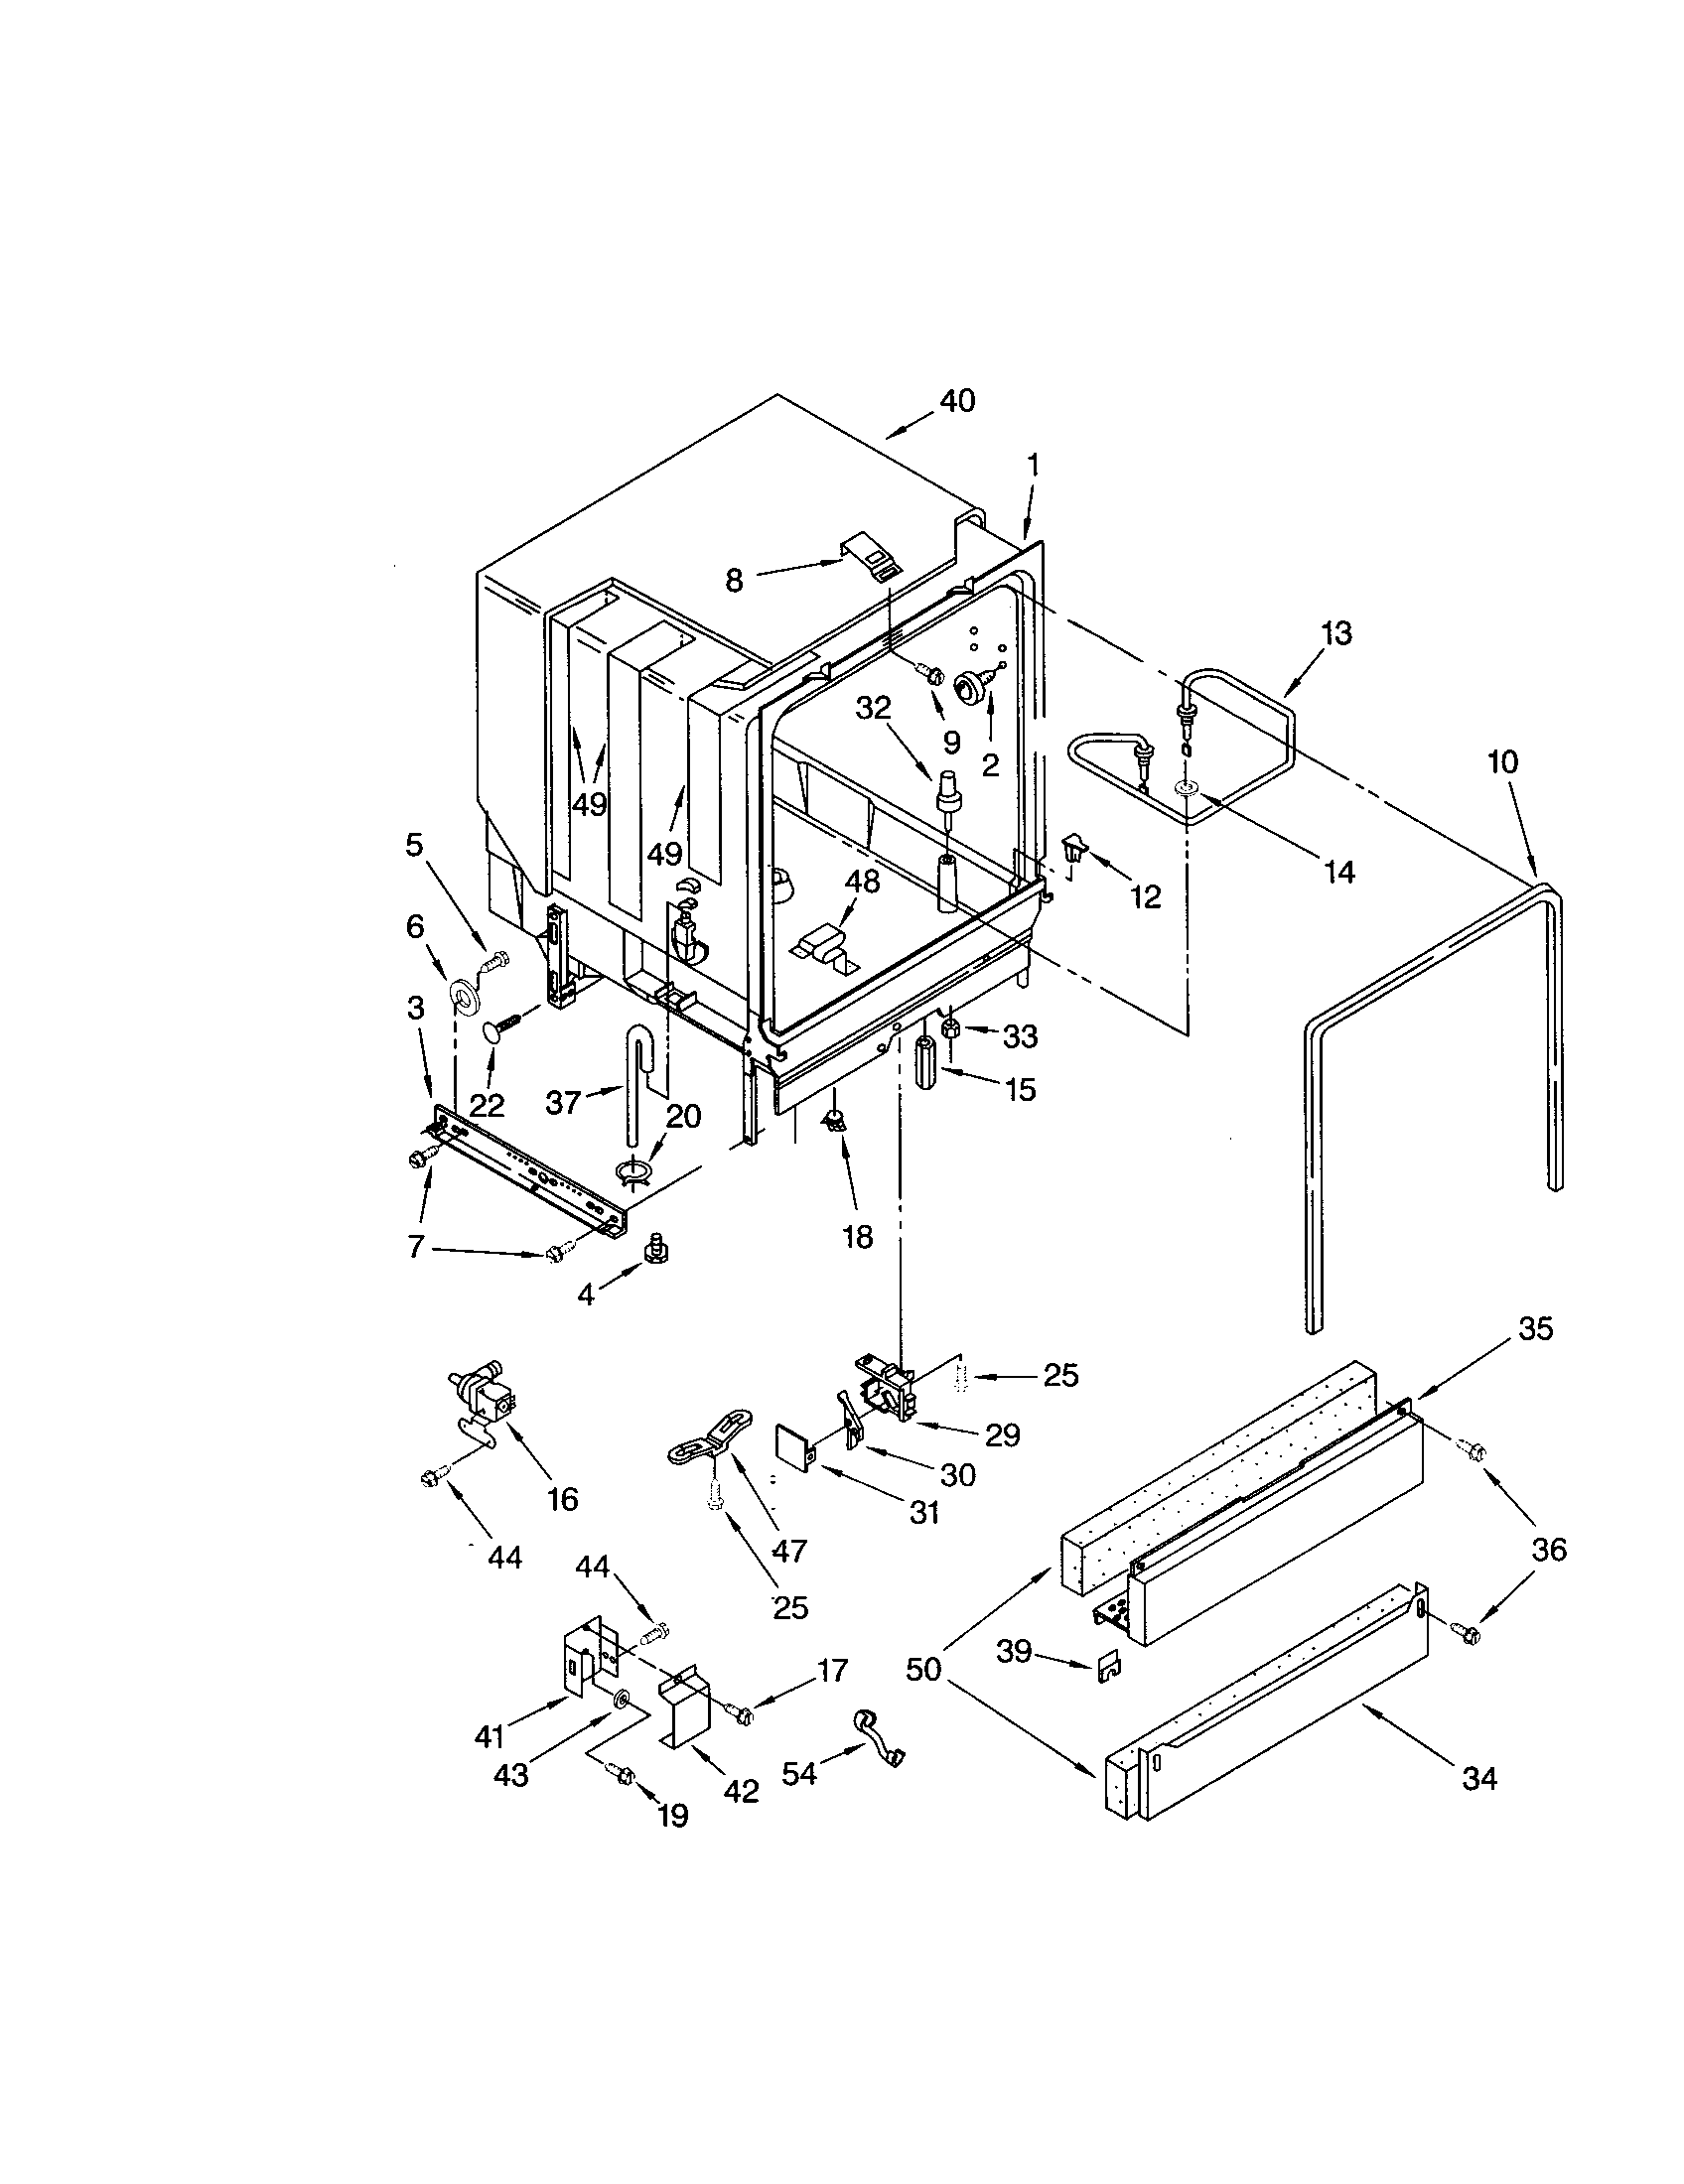 Kenmore 66515805890 tub assembly diagram